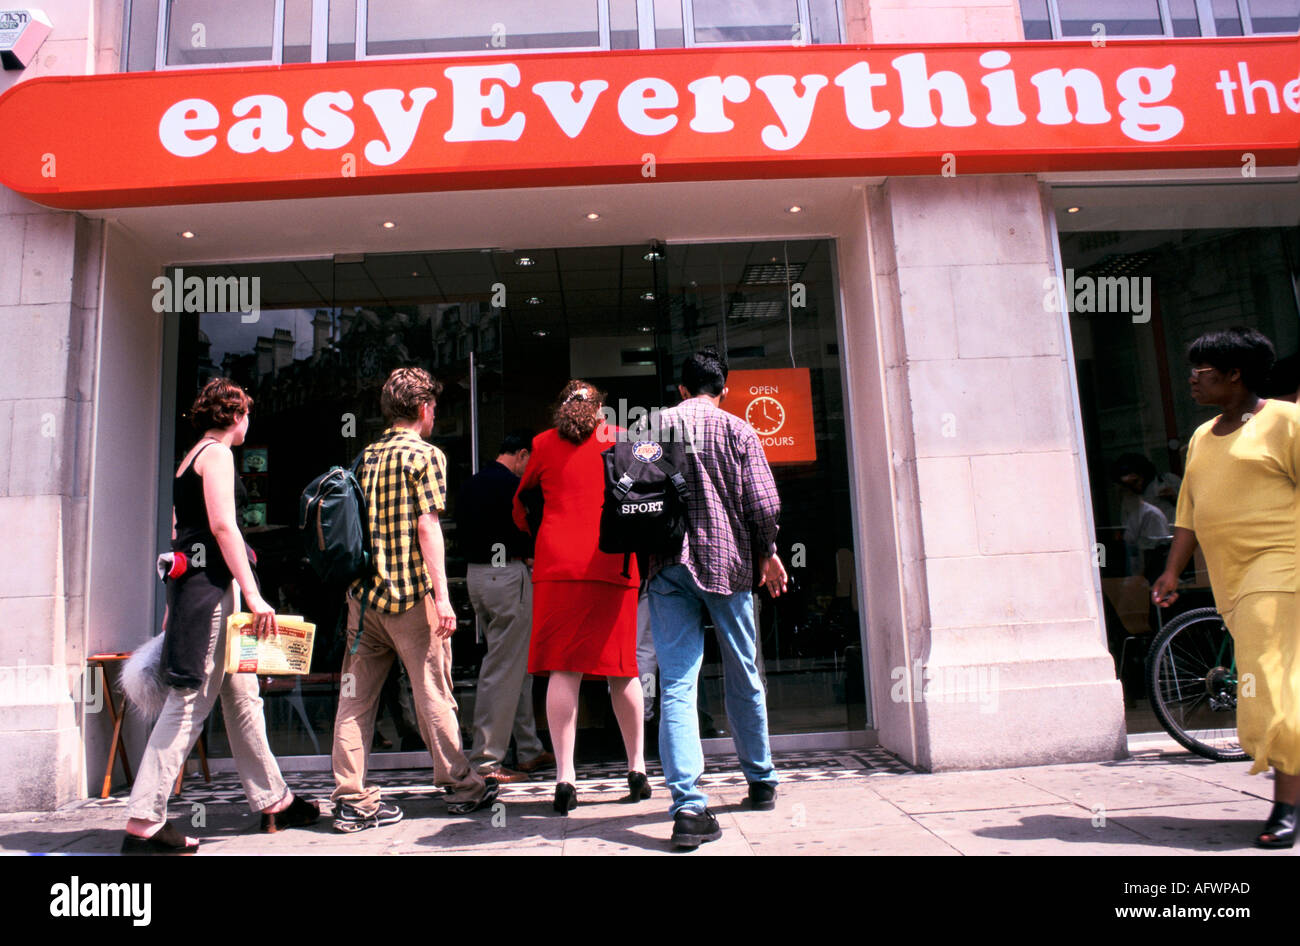 EASYEVERYTHING INTERNET SHOP LONDON UK  ENTRANCE TO THE VICTORIA CAFE 1999 HOMER SYKES - Stock Image